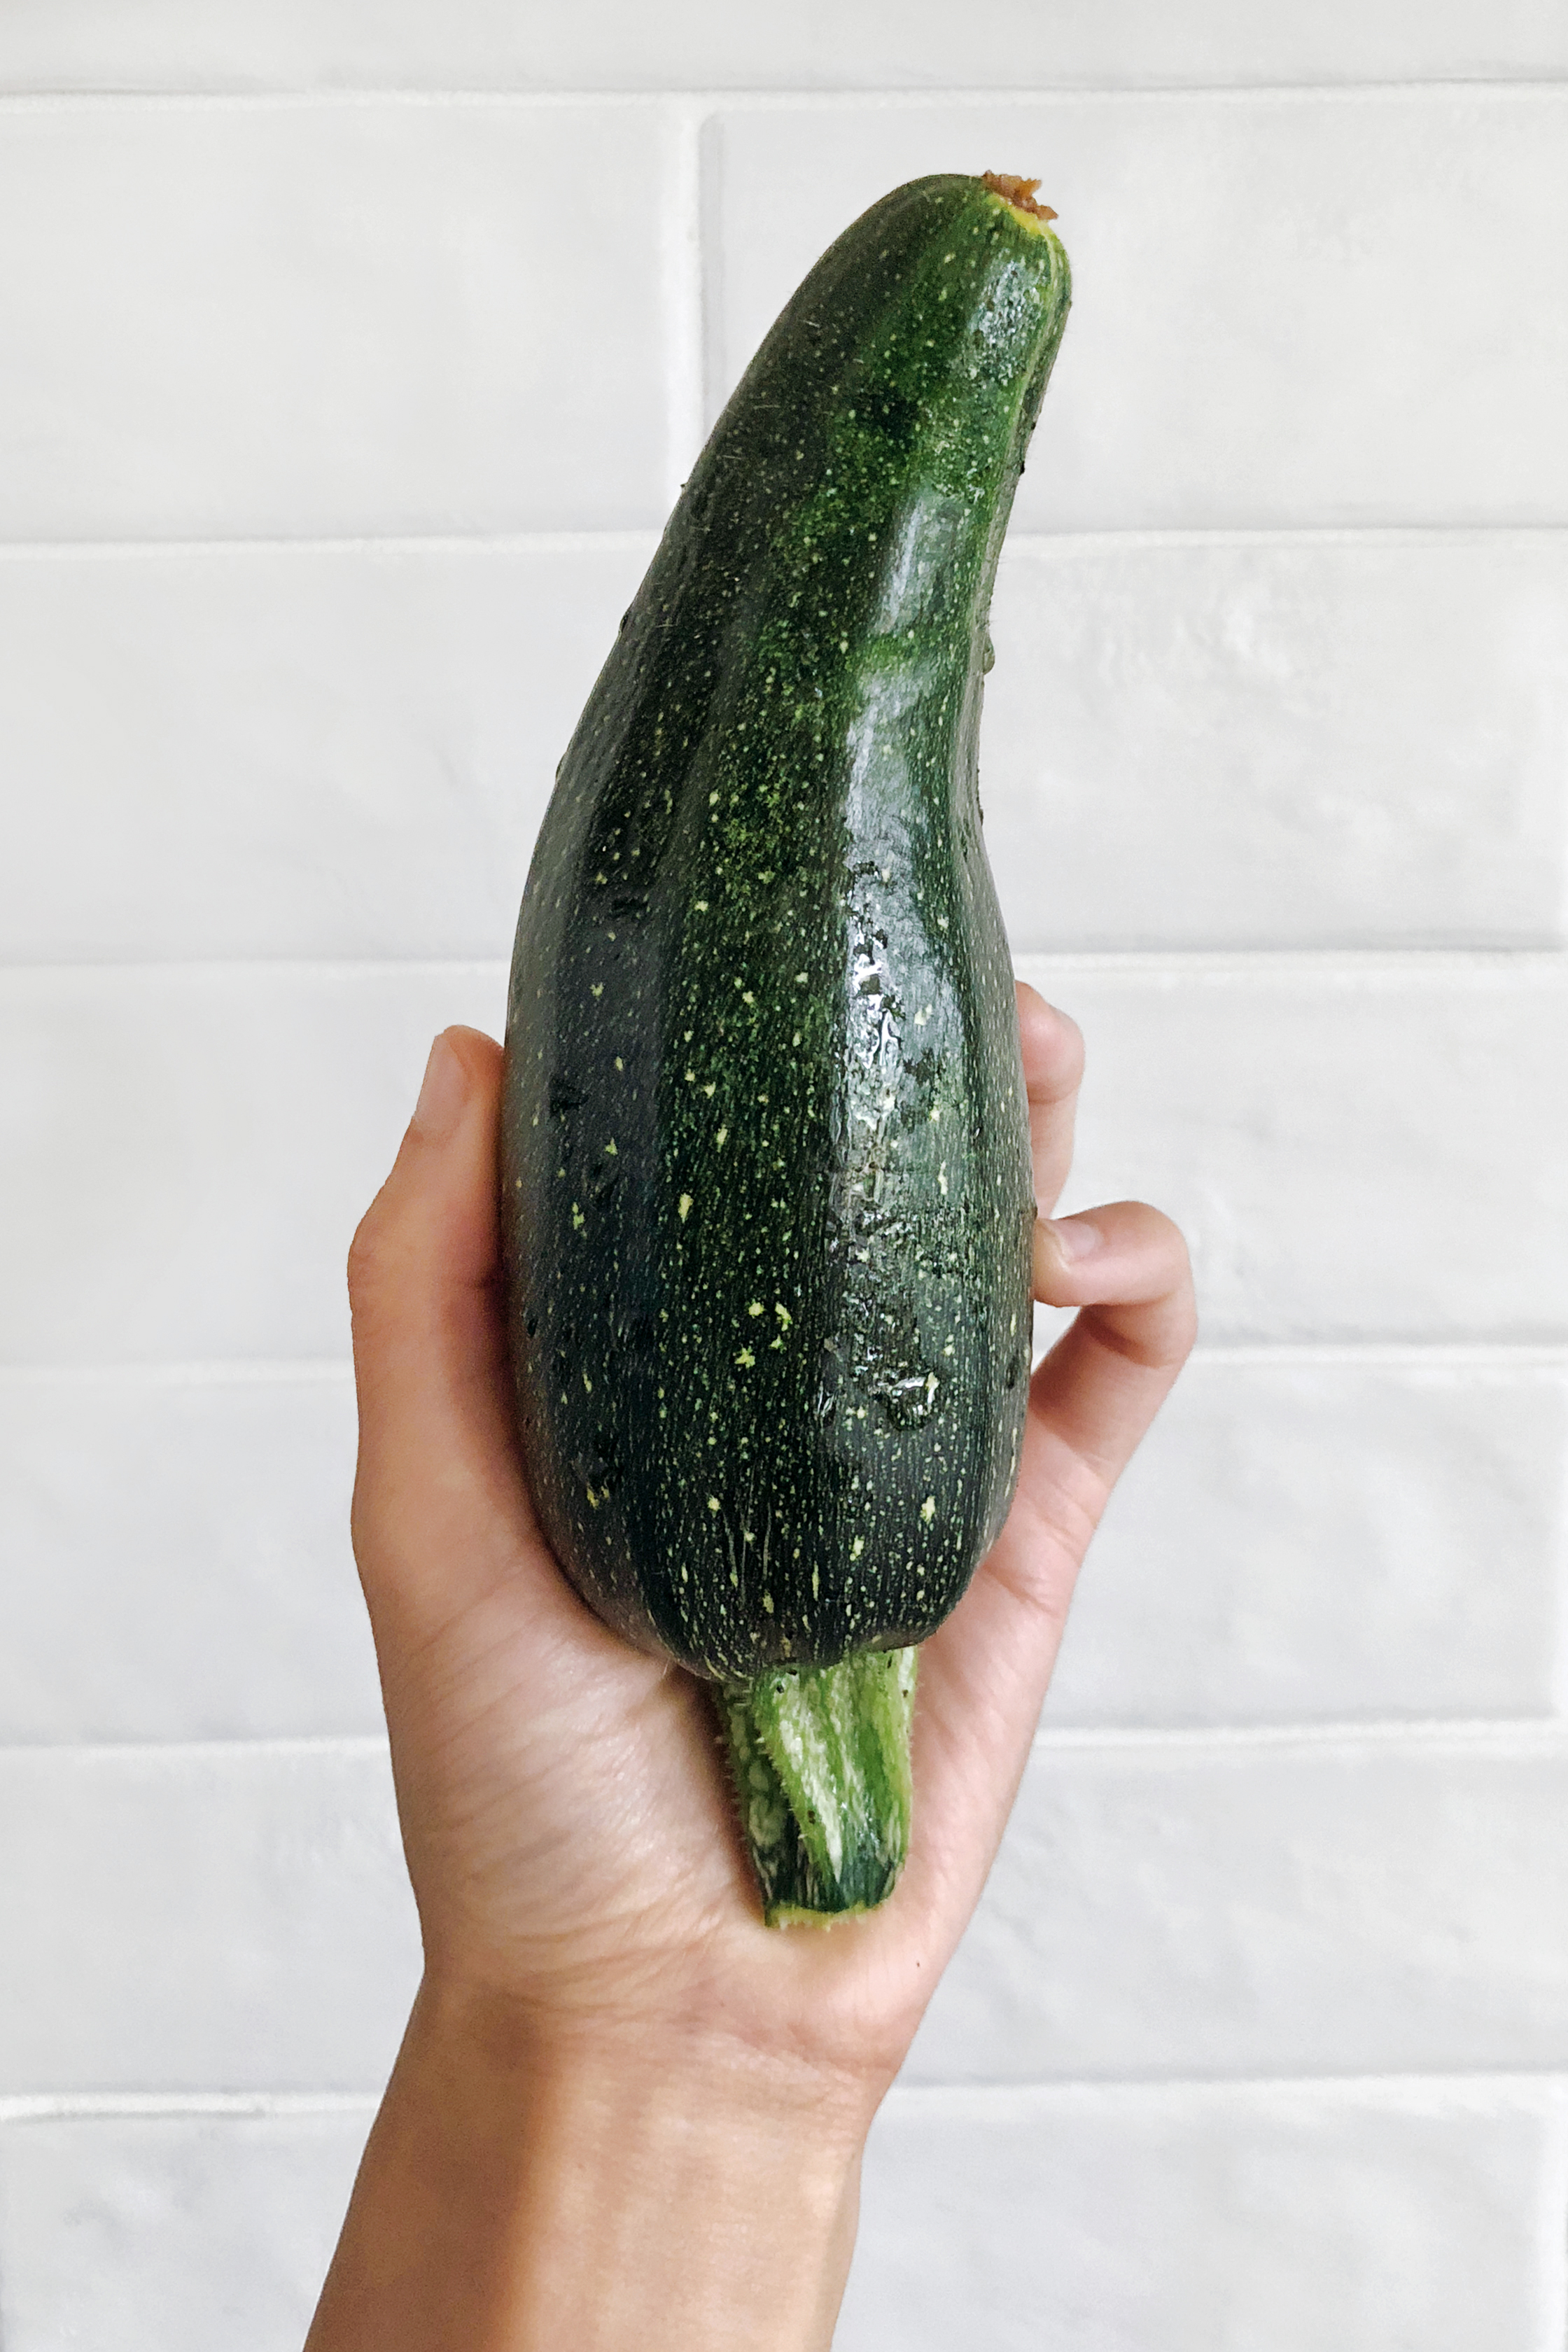 Zucchini with character